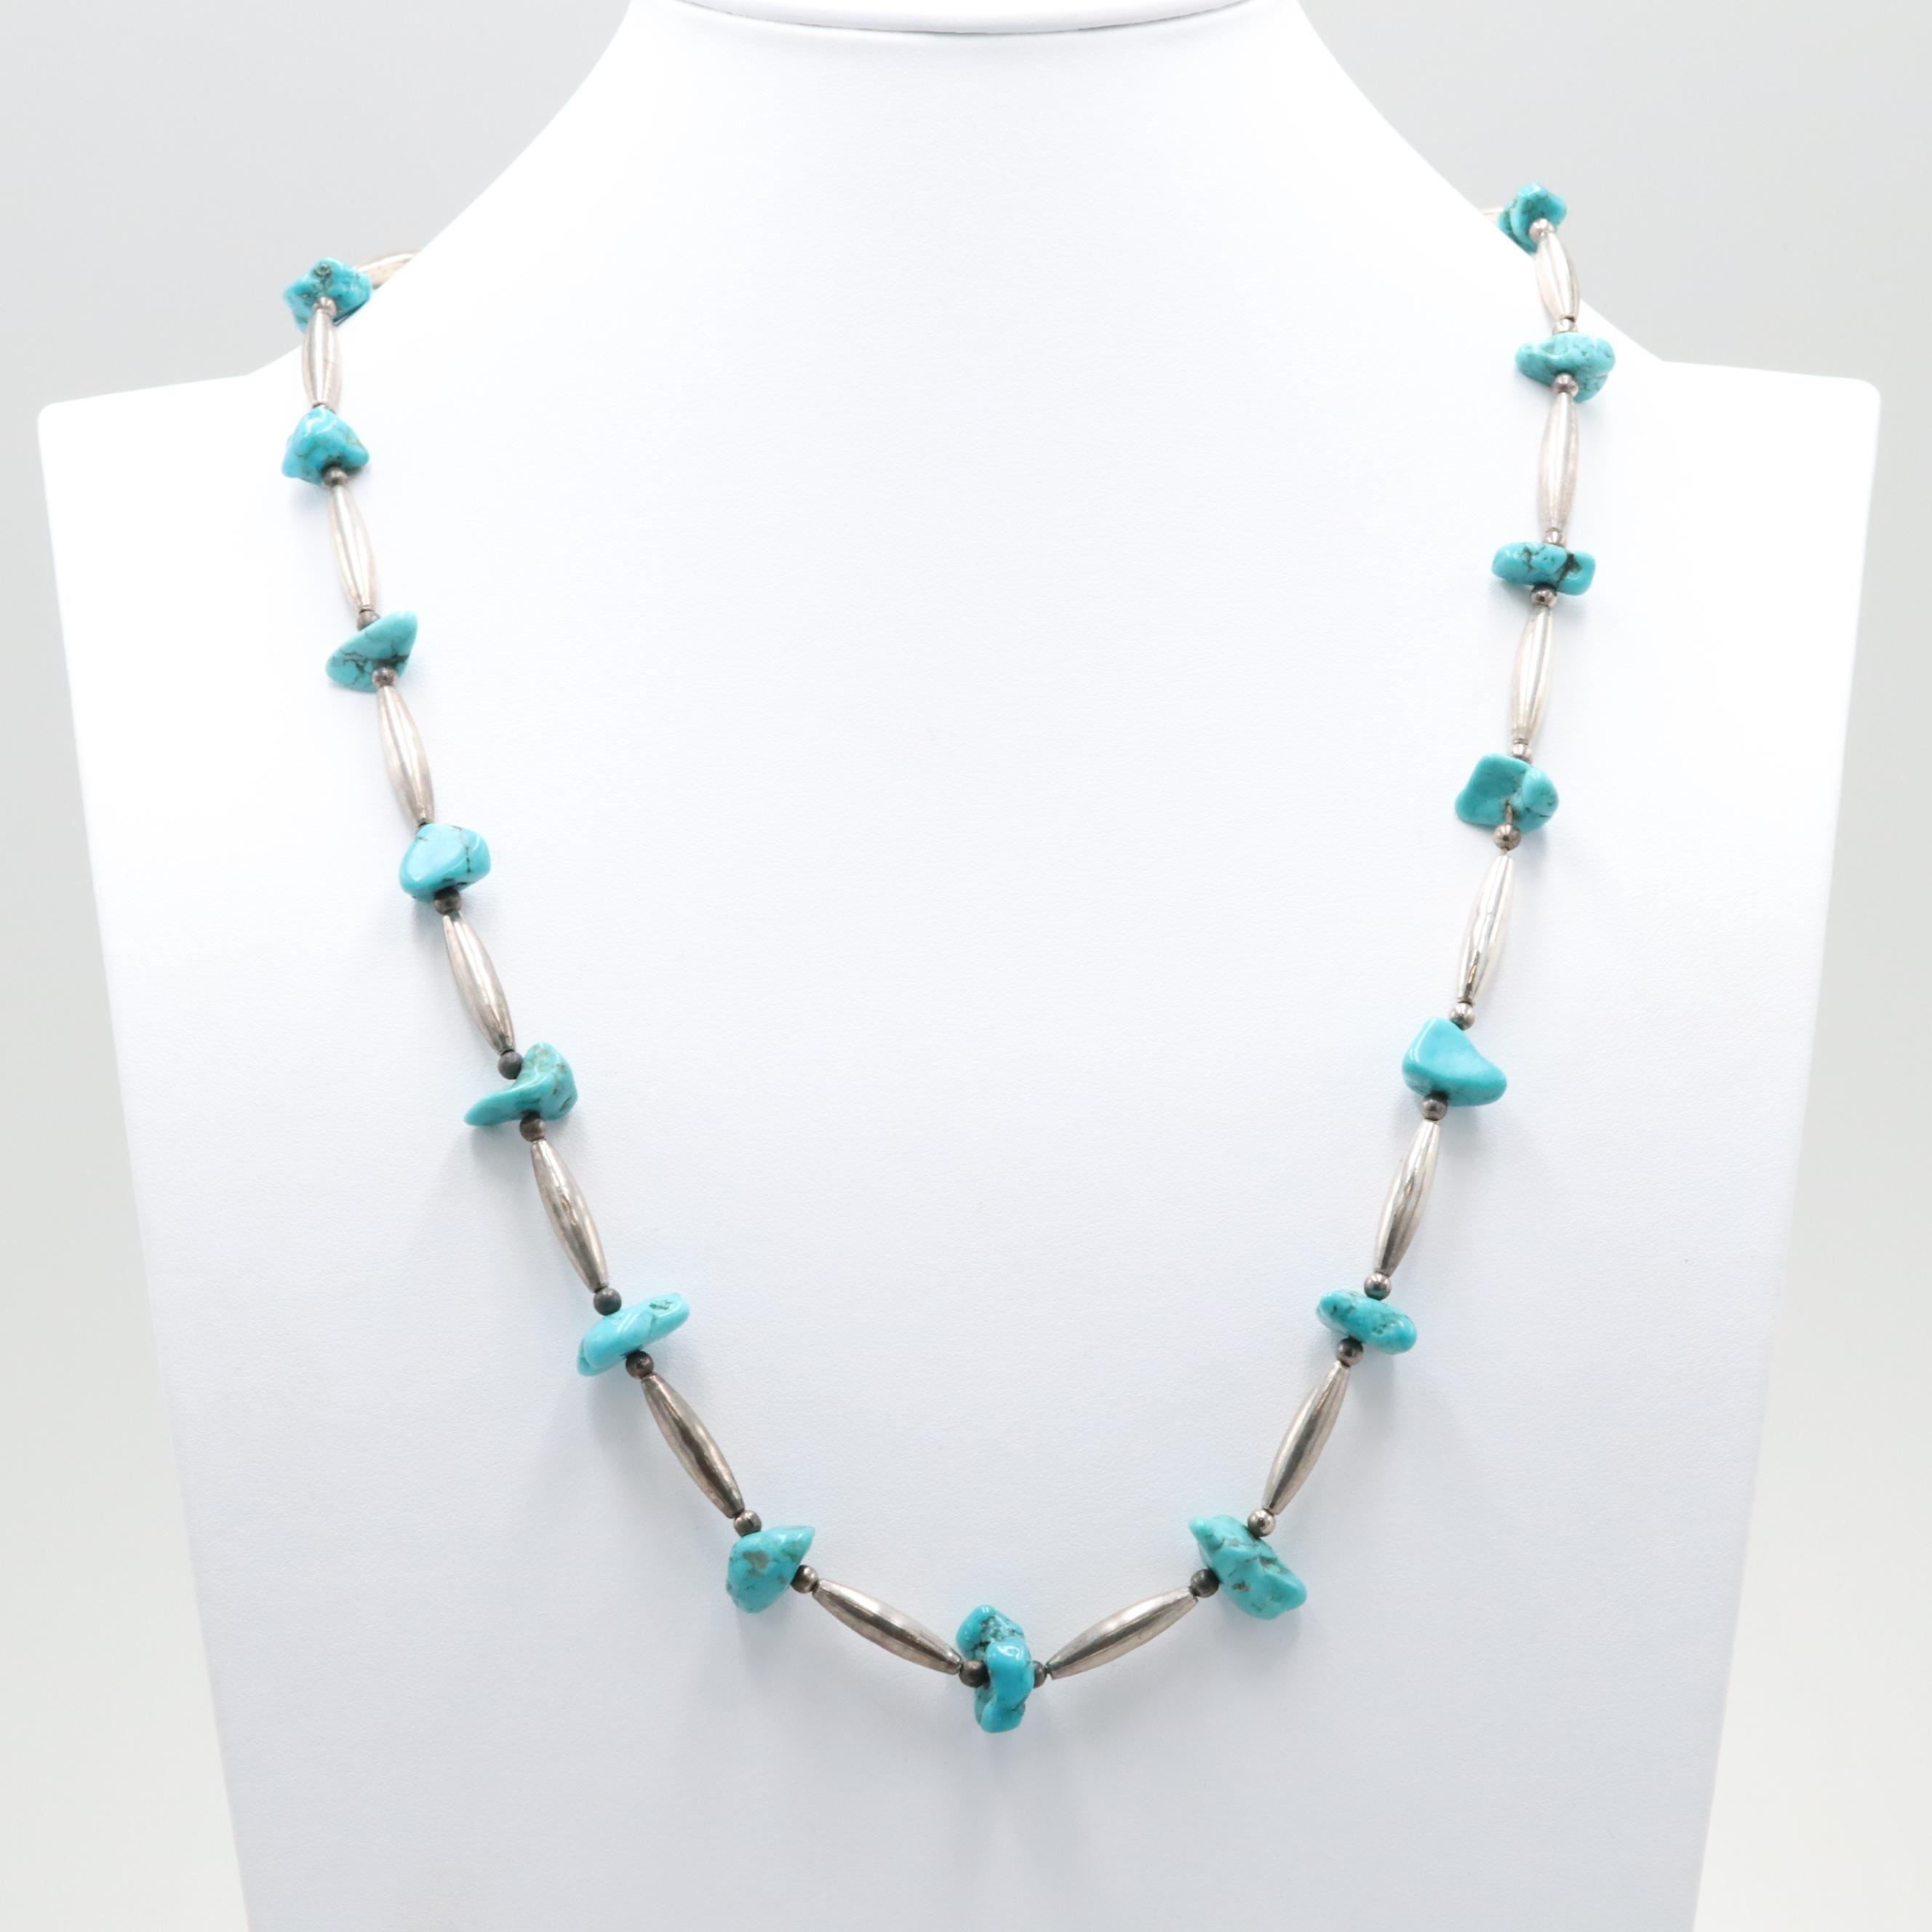 Silver Tone and Turquoise Beaded Necklace